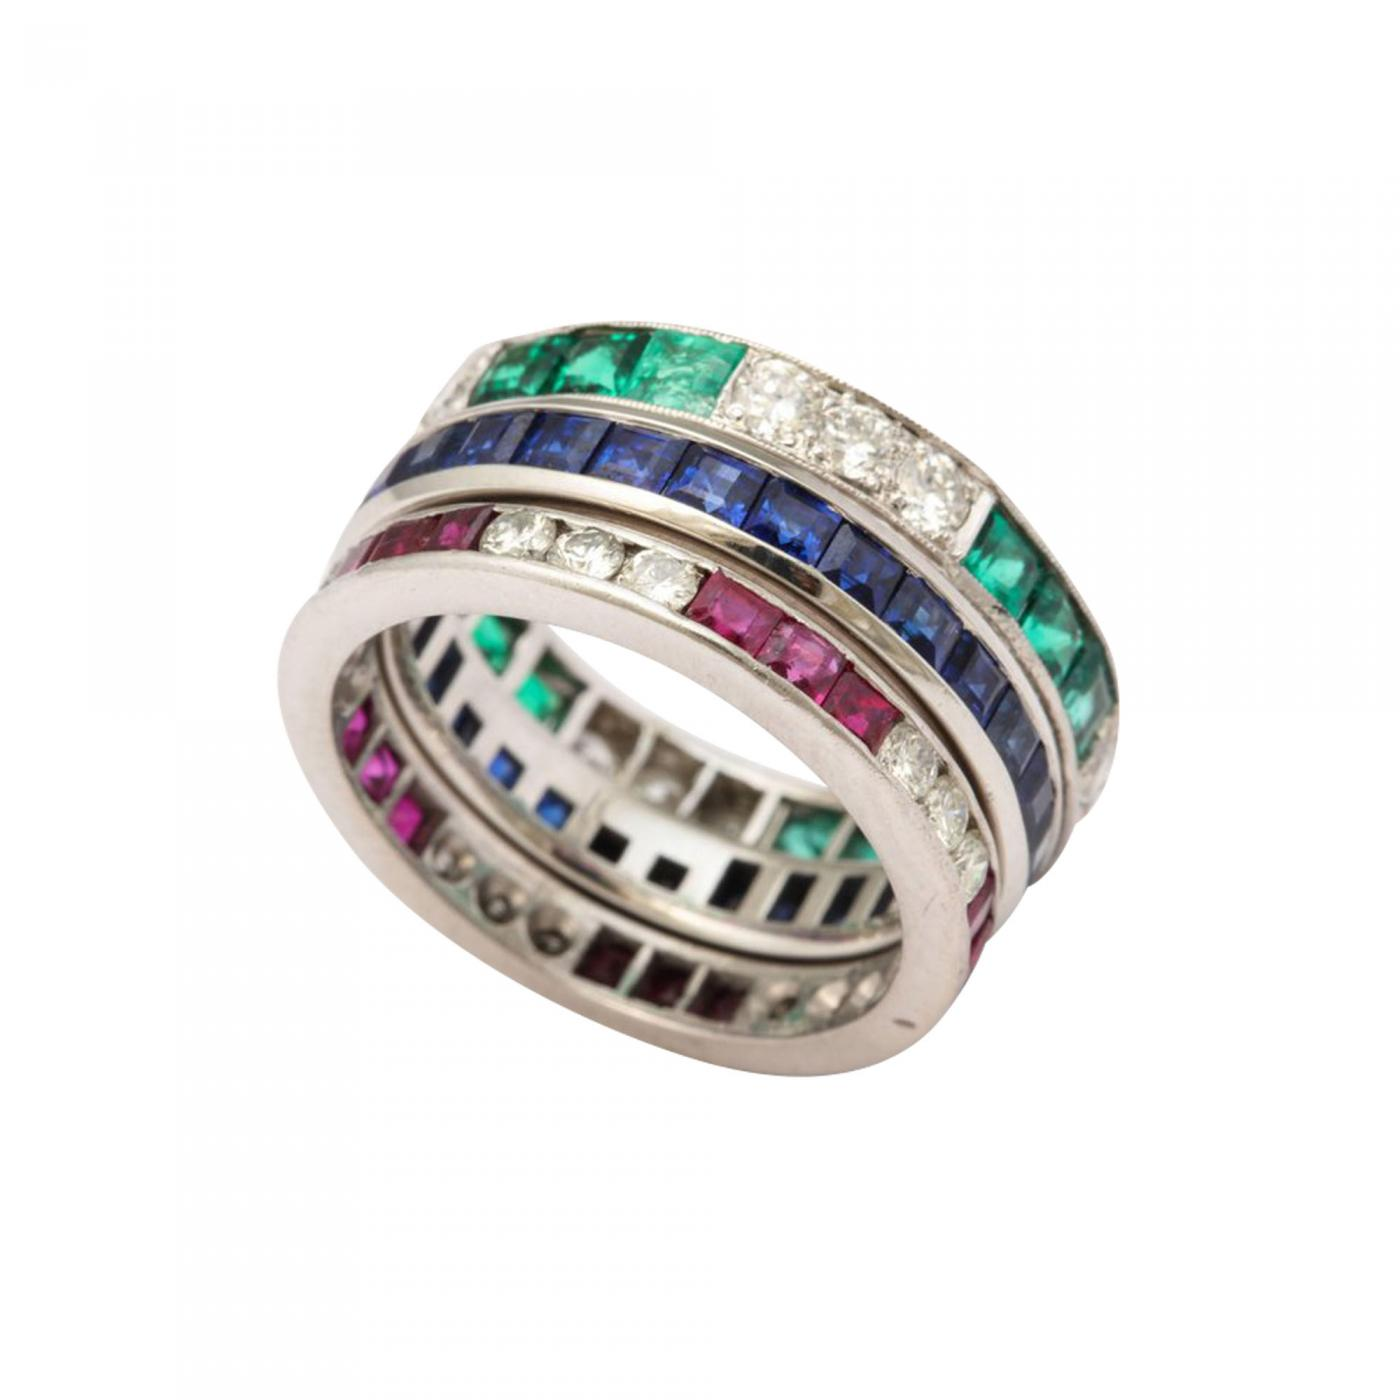 Tiffany and Co Wedding Bands of Diamonds Sapphires Rubies and